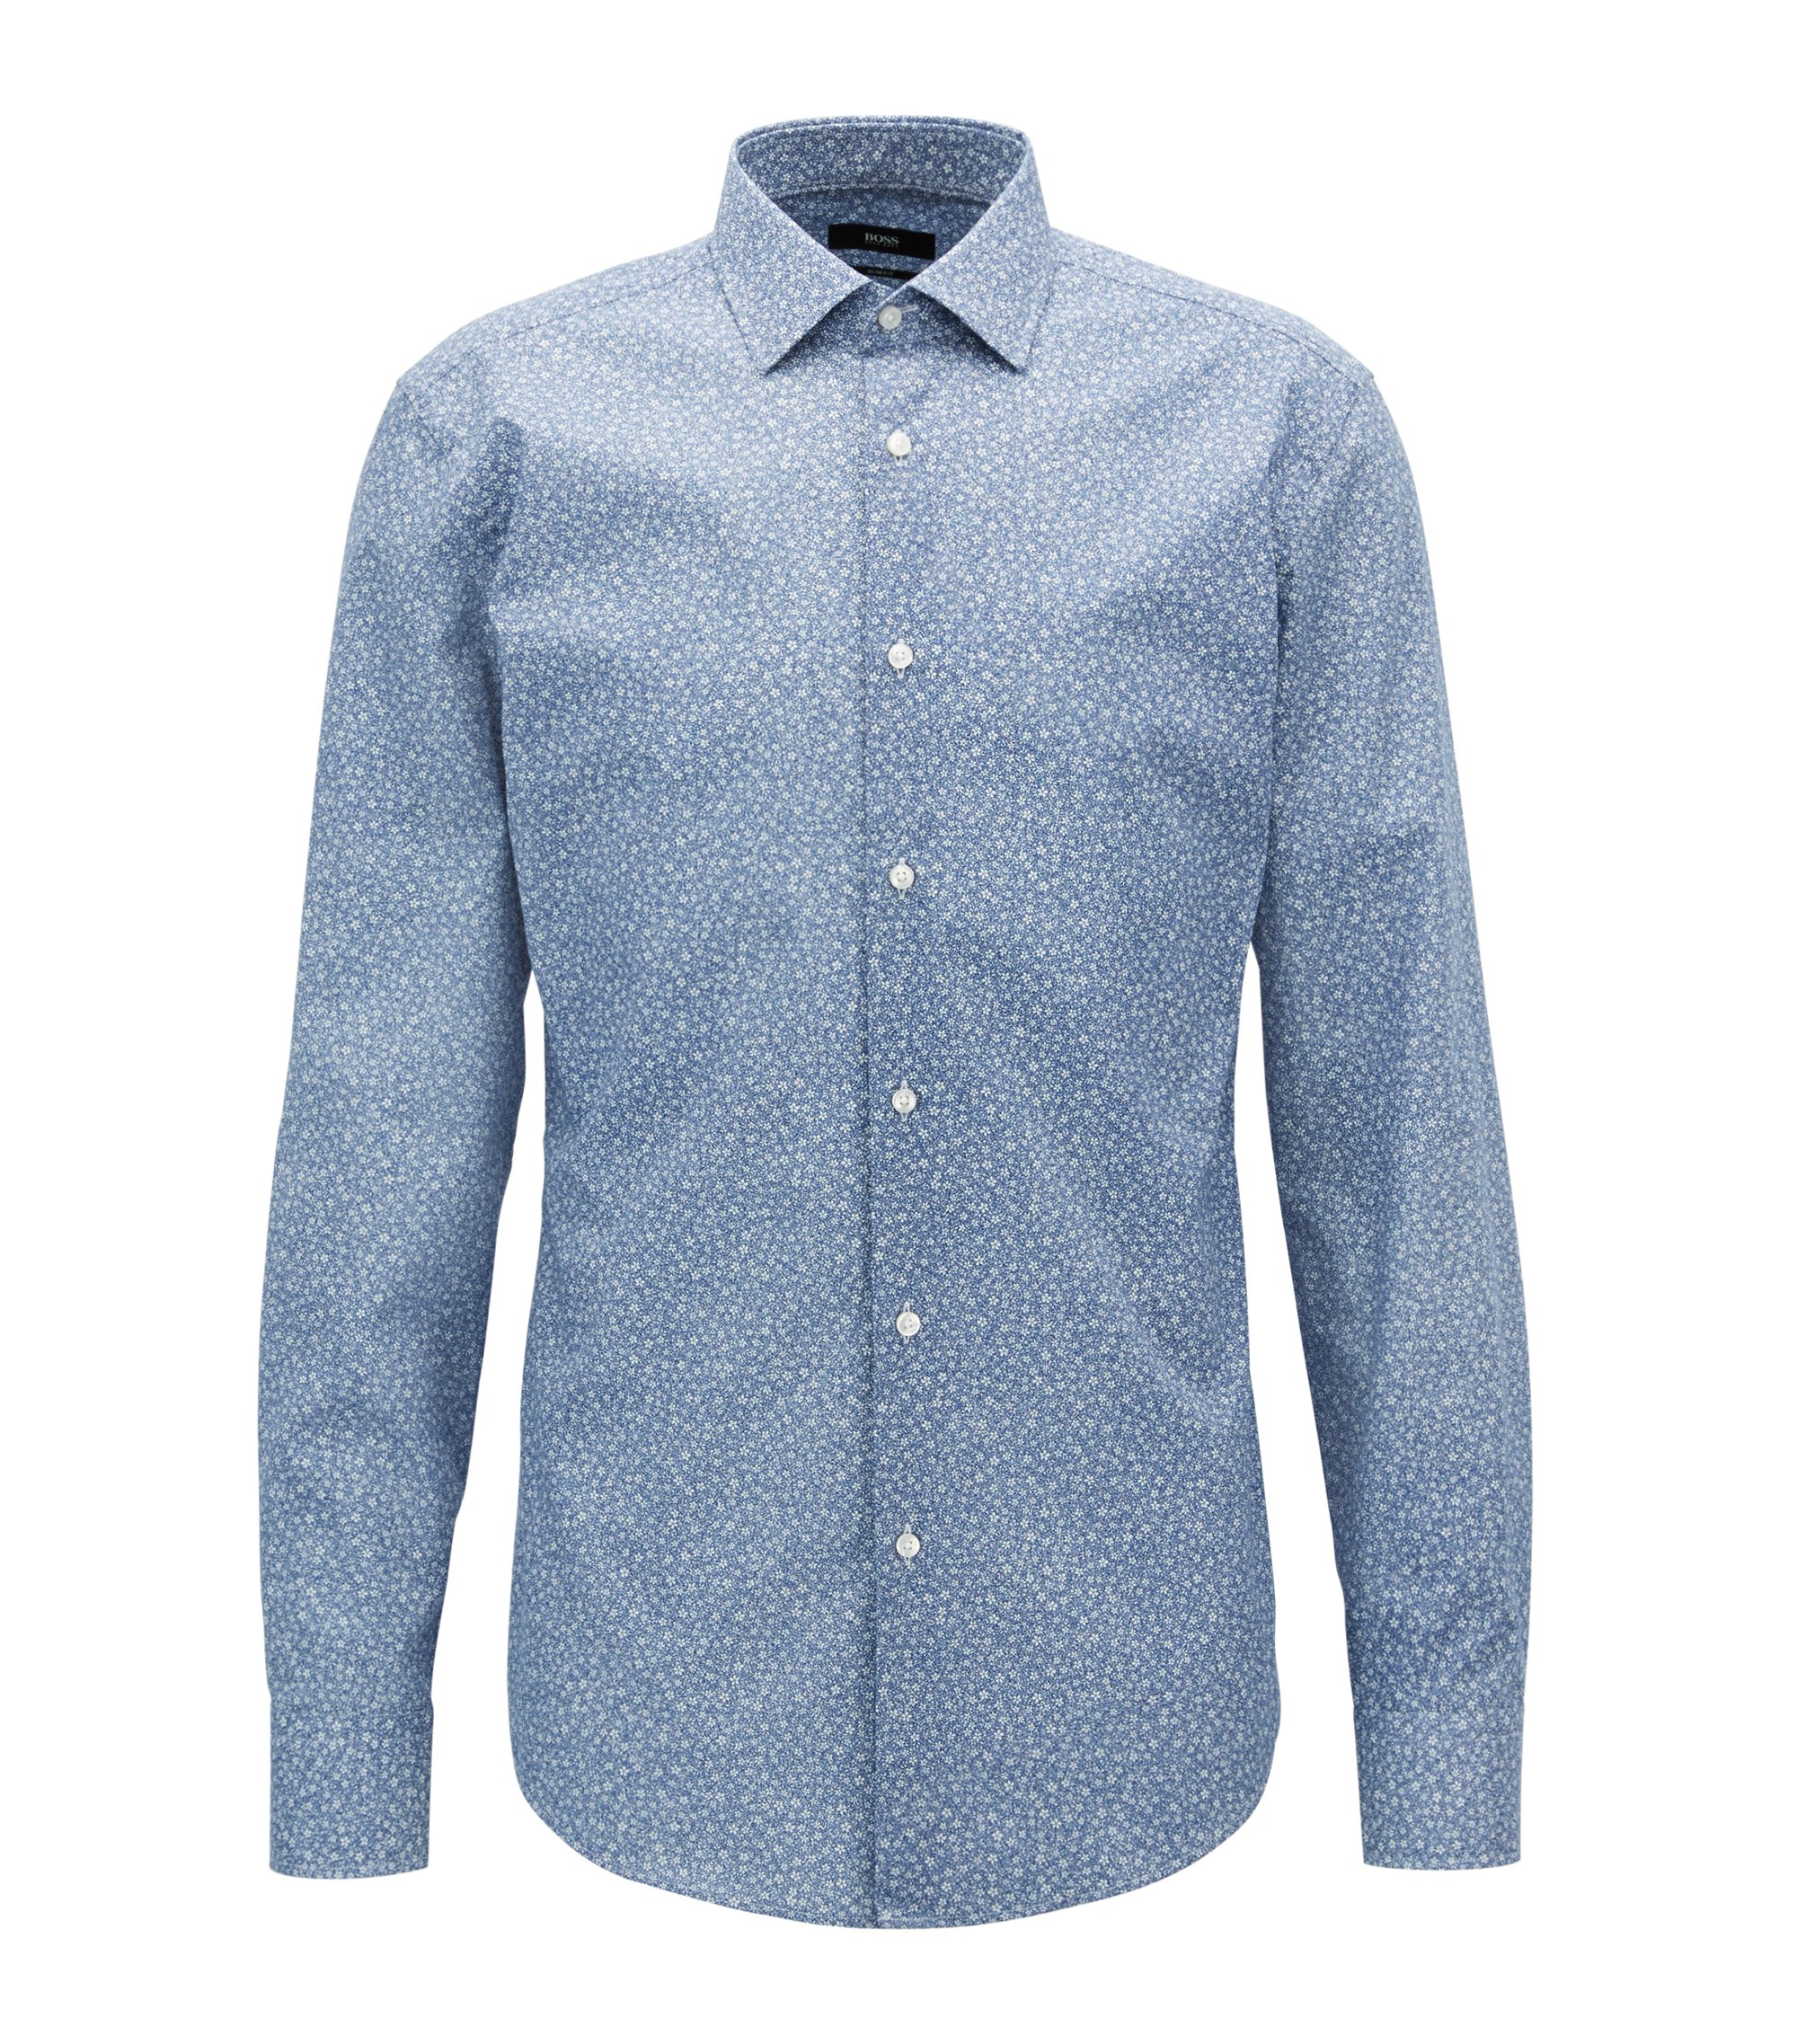 Floral-print cotton shirt in a slim fit , Donkerblauw